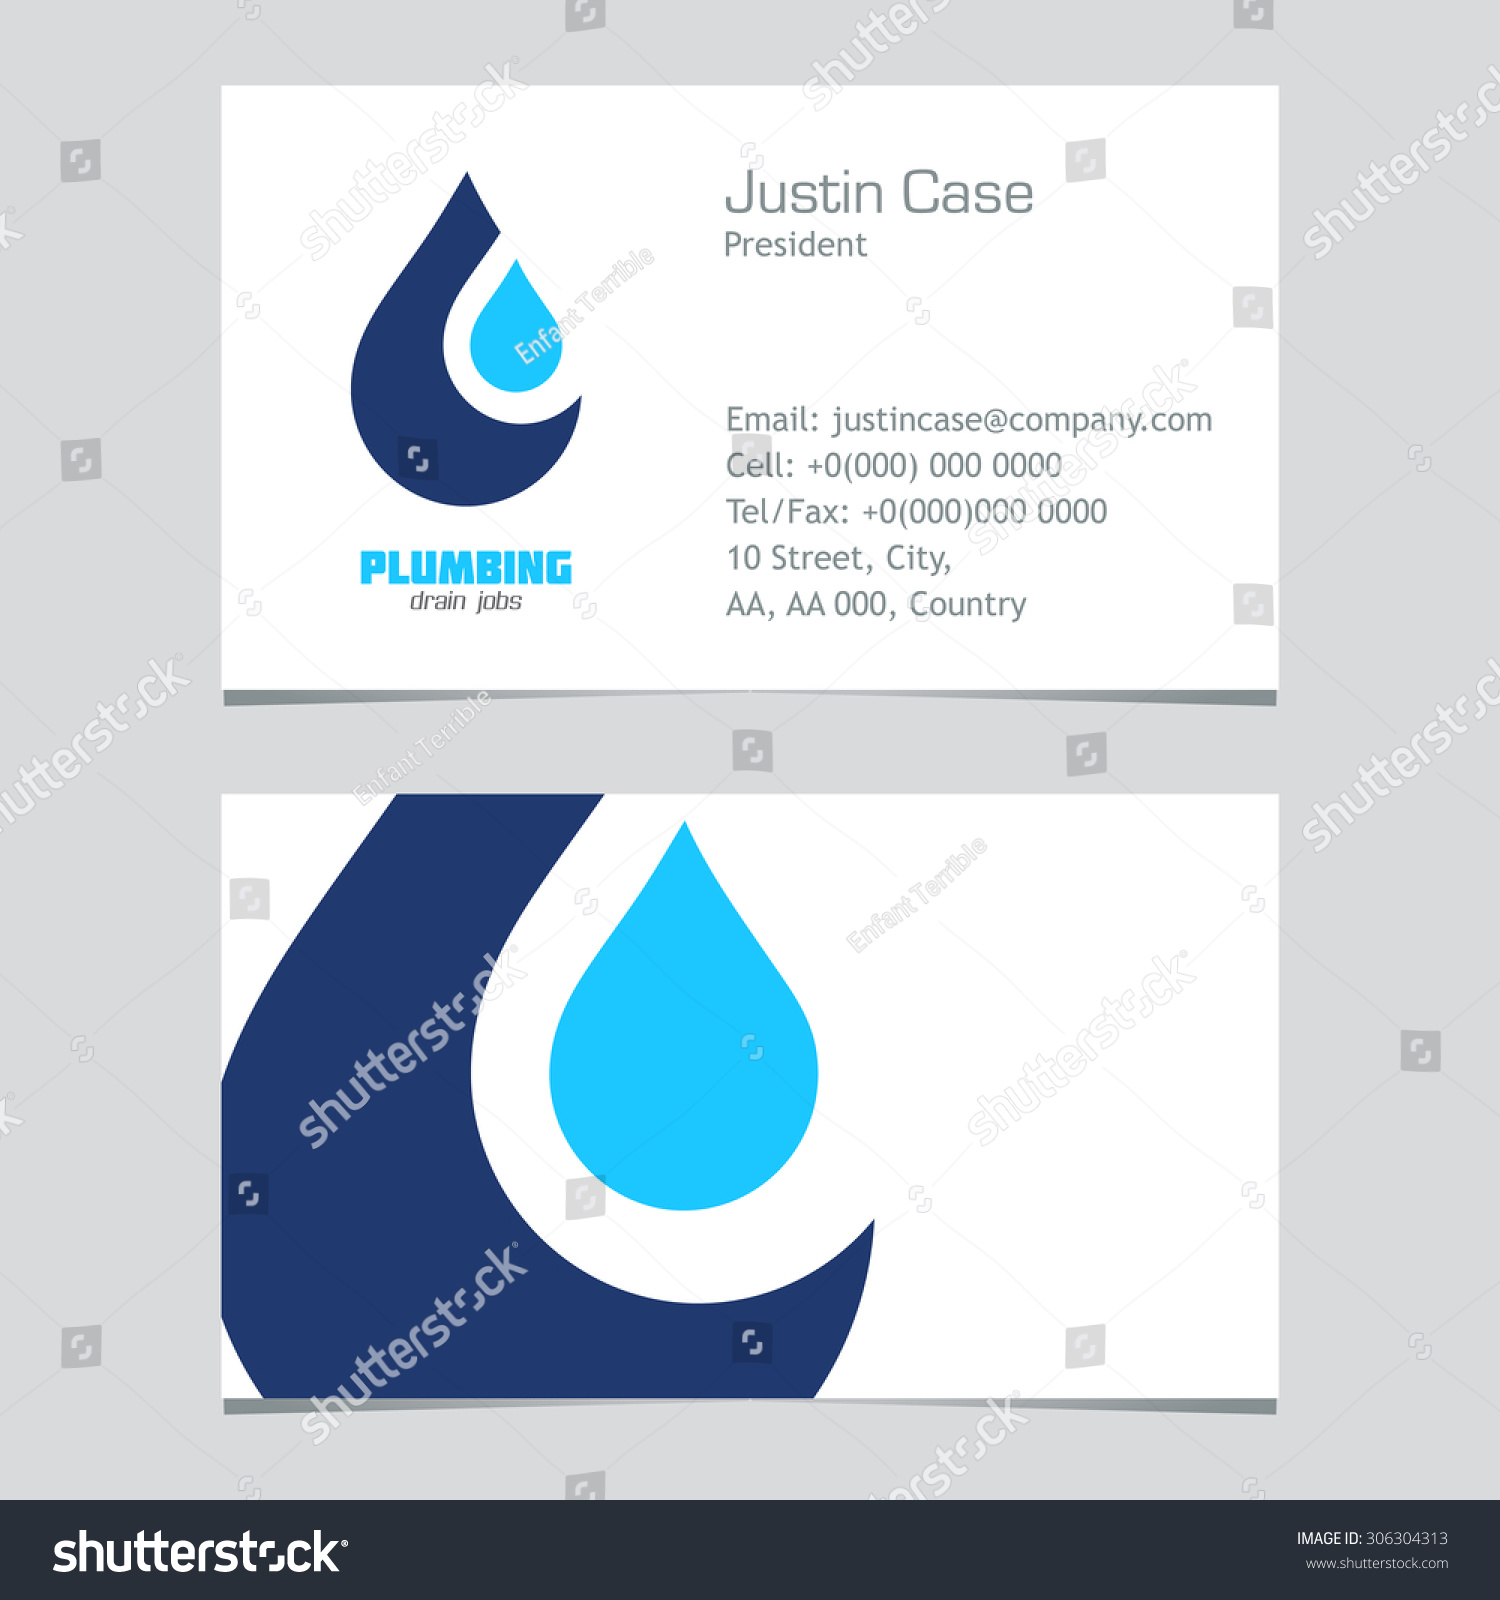 plumbing business sign business card vector stock vector 306304313 shutterstock. Black Bedroom Furniture Sets. Home Design Ideas